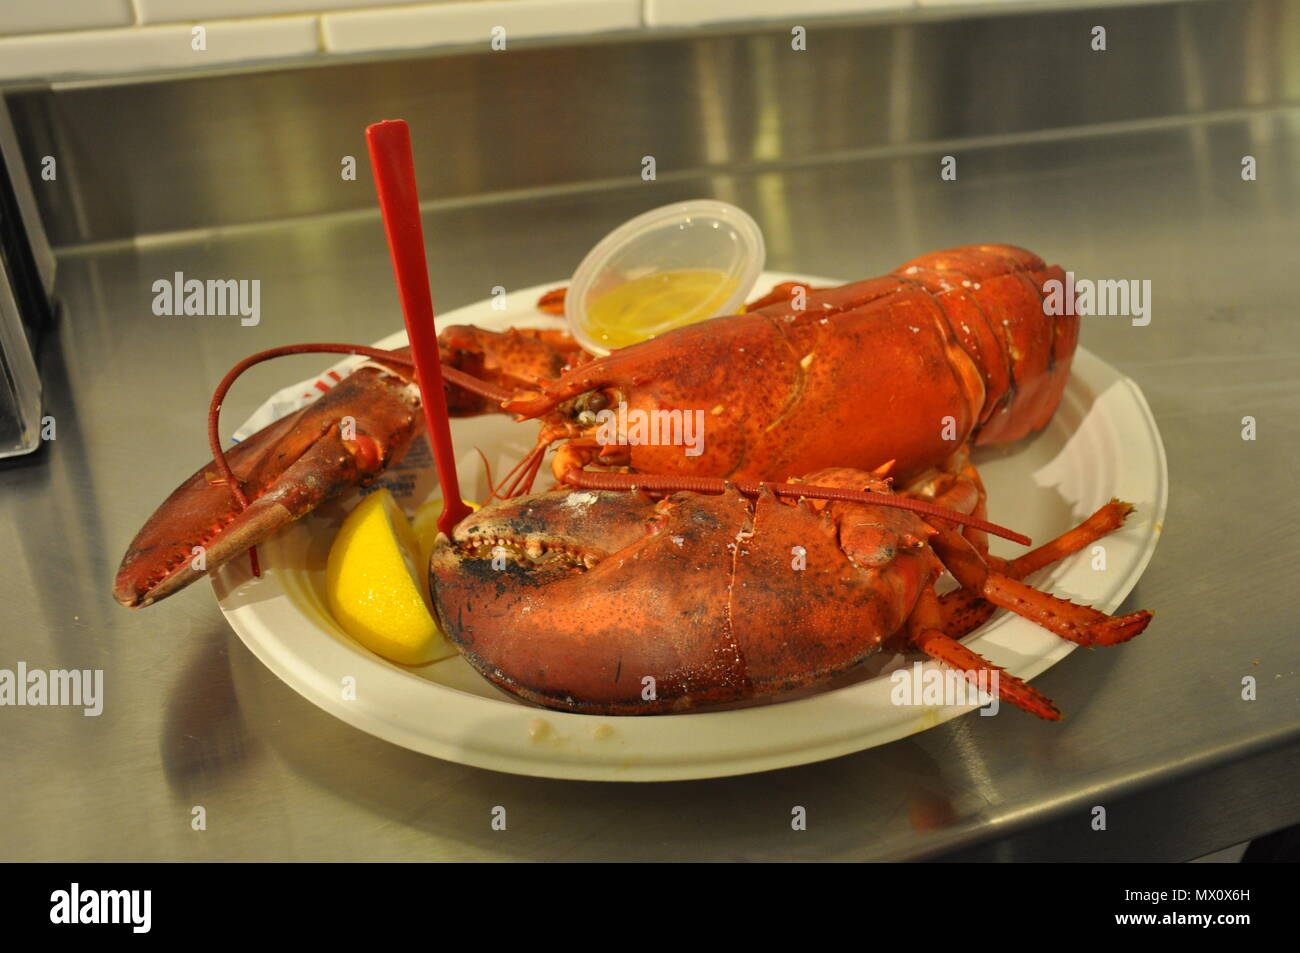 Lobster Dinner Usa Stock Photos & Lobster Dinner Usa Stock Images - Alamy